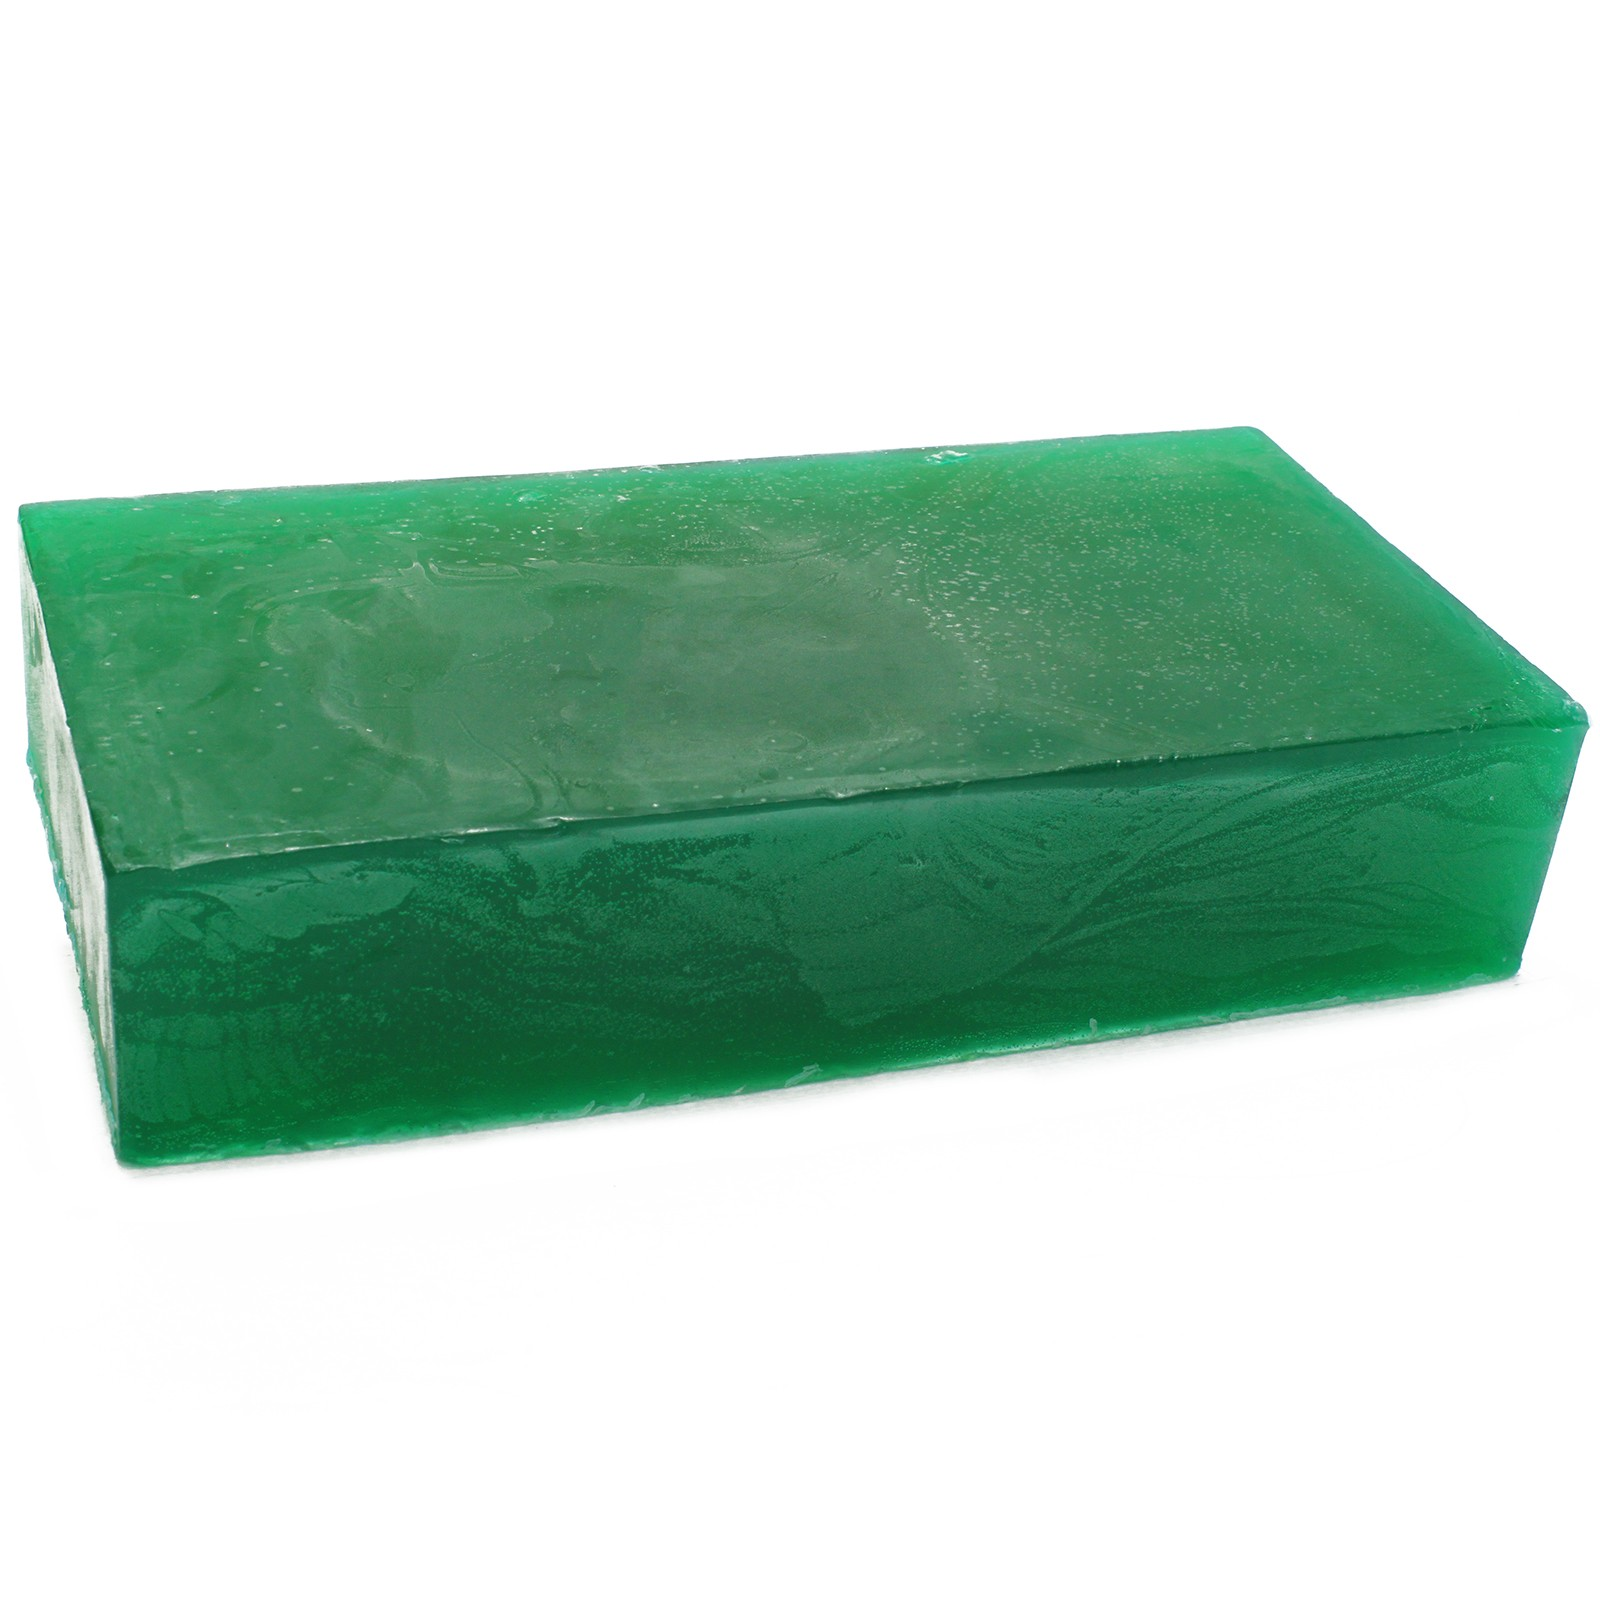 Peppermint Essential Oil Soap Loaf 2kg